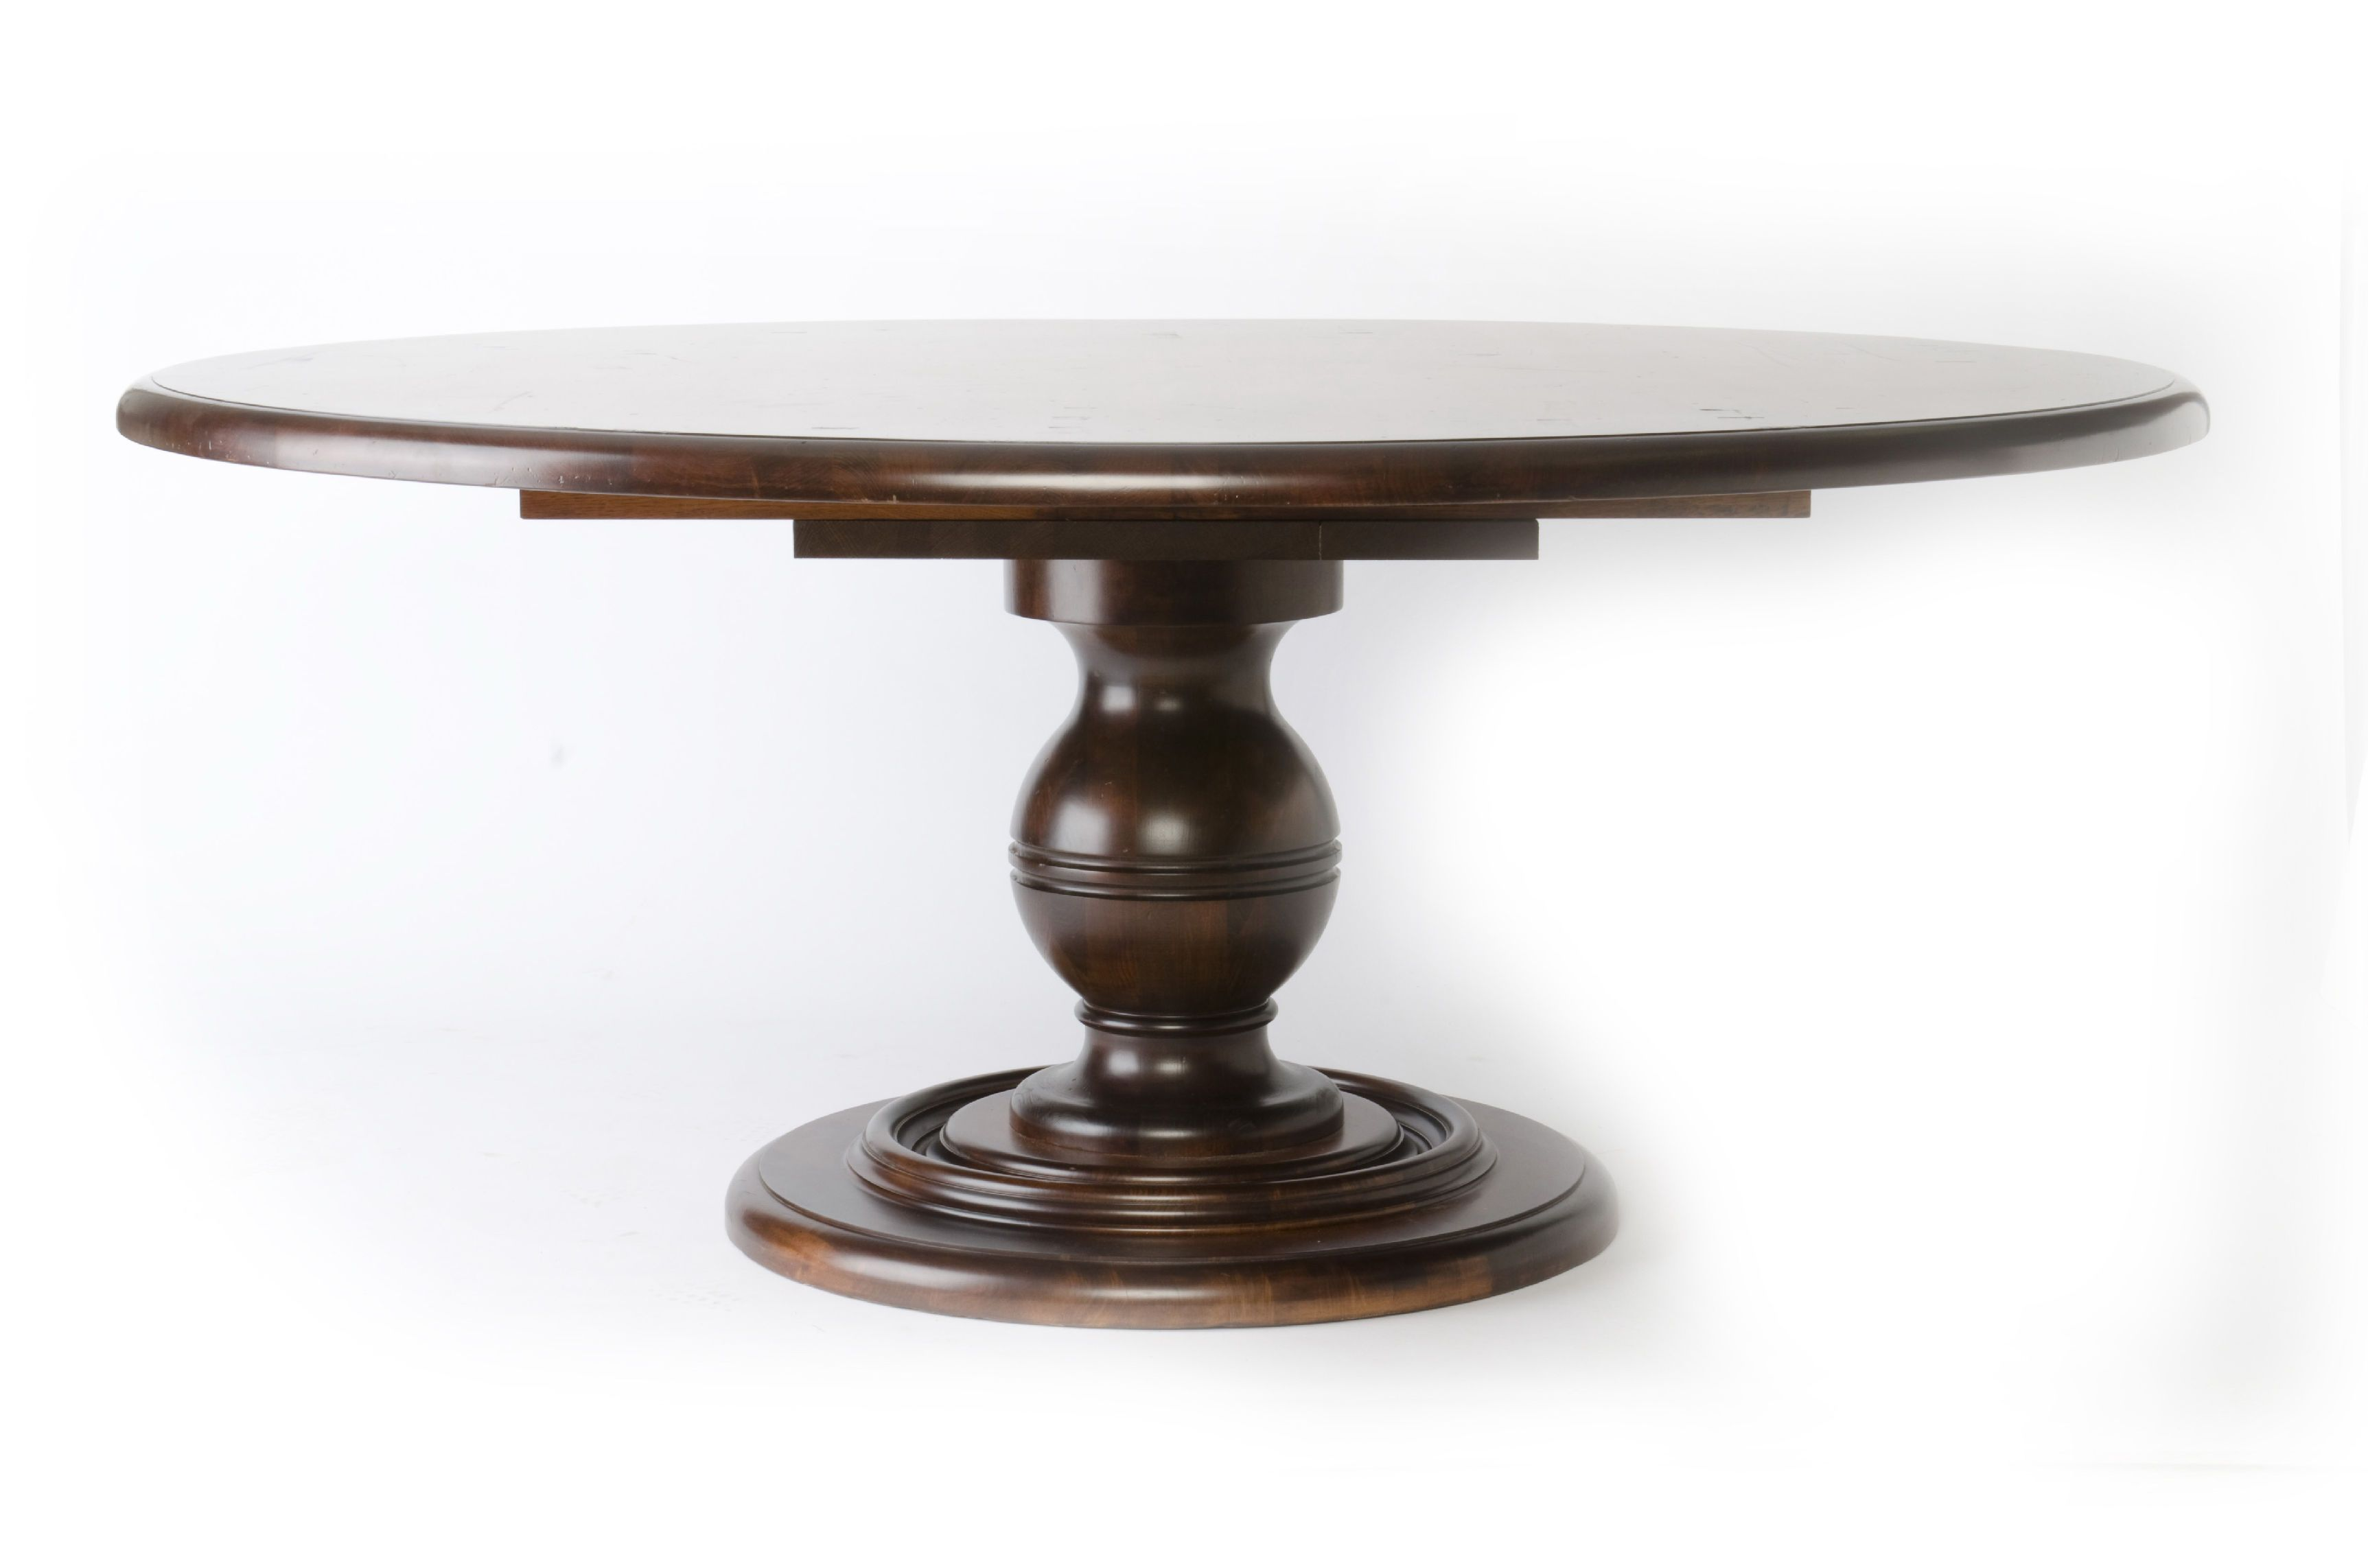 table furniture kitchen design chairs size solid tables oak large pedestal and full hardwood wood dining room pure of